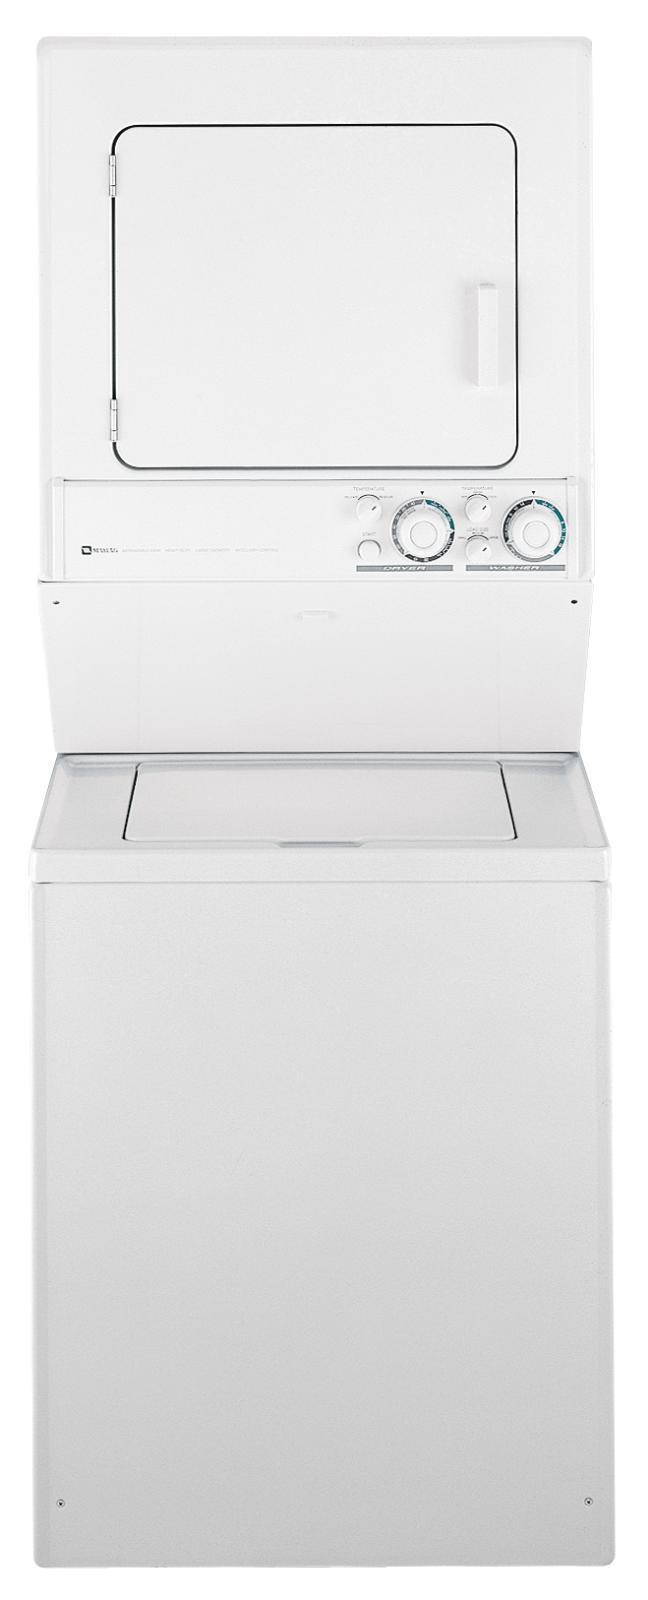 Lse7806ace Maytag Lse7806ace Laundry Centers White